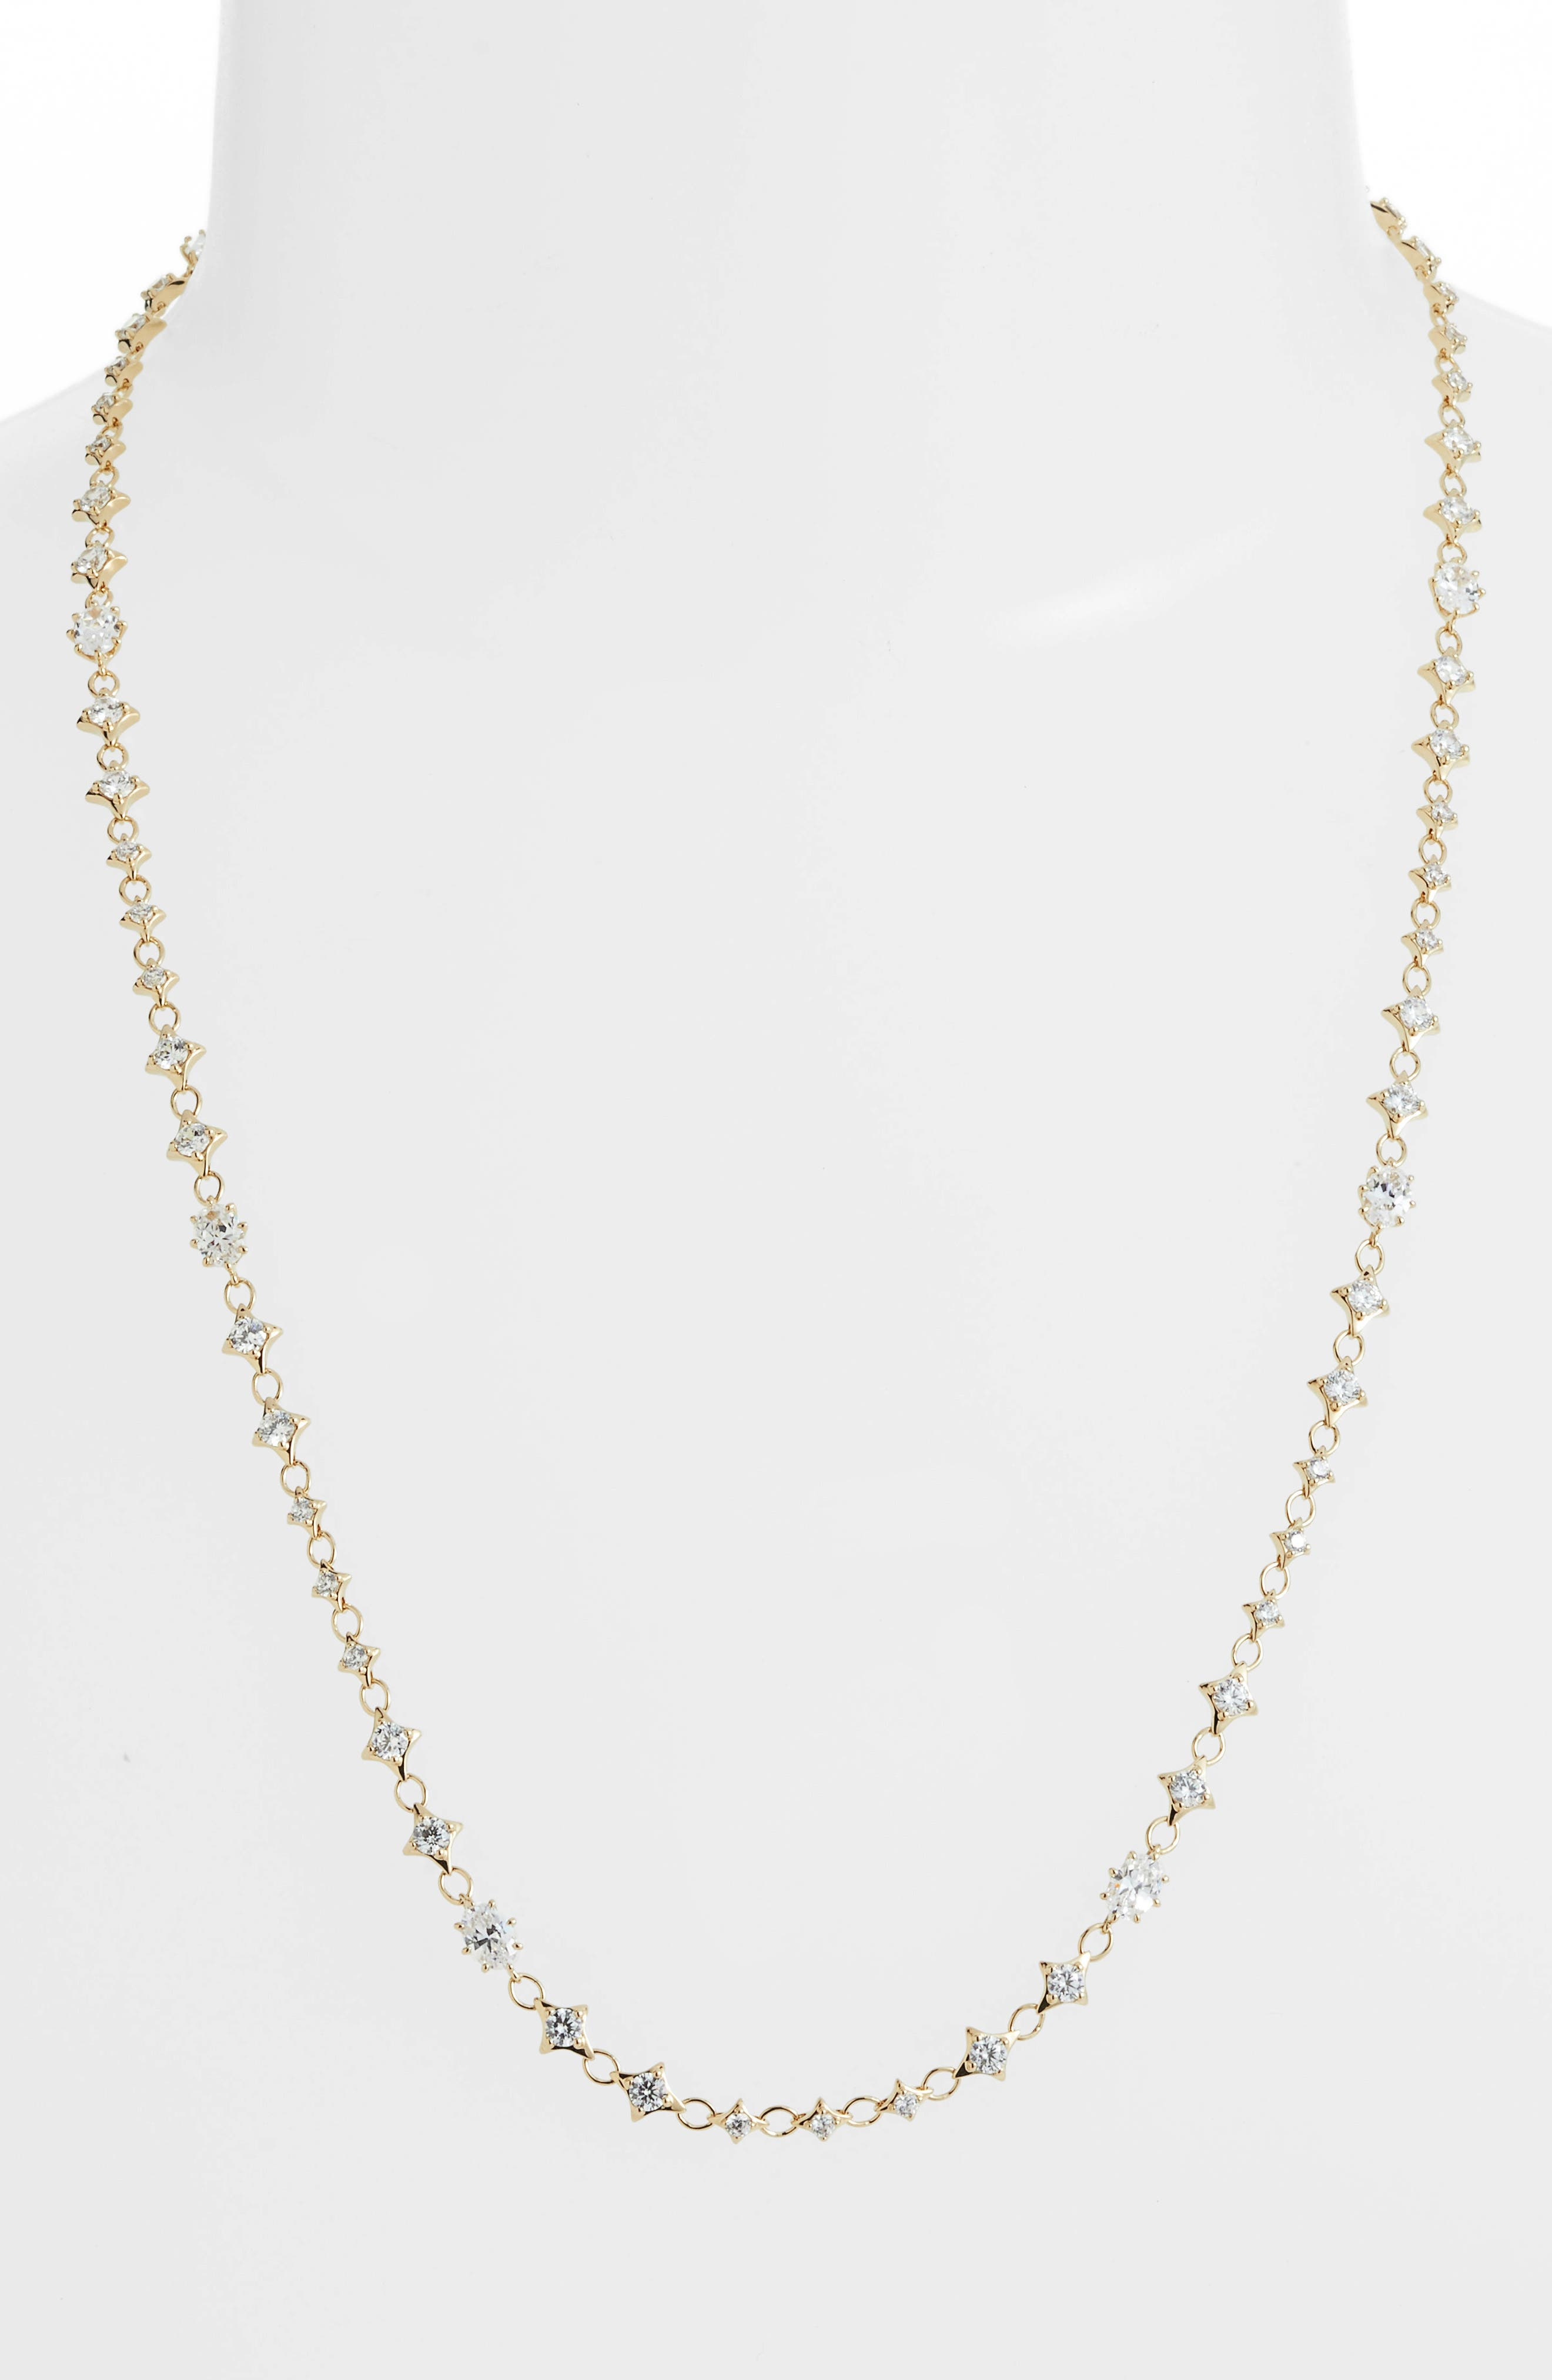 Boho Cubic Zirconia Necklace,                             Main thumbnail 1, color,                             GOLD/ CLEAR